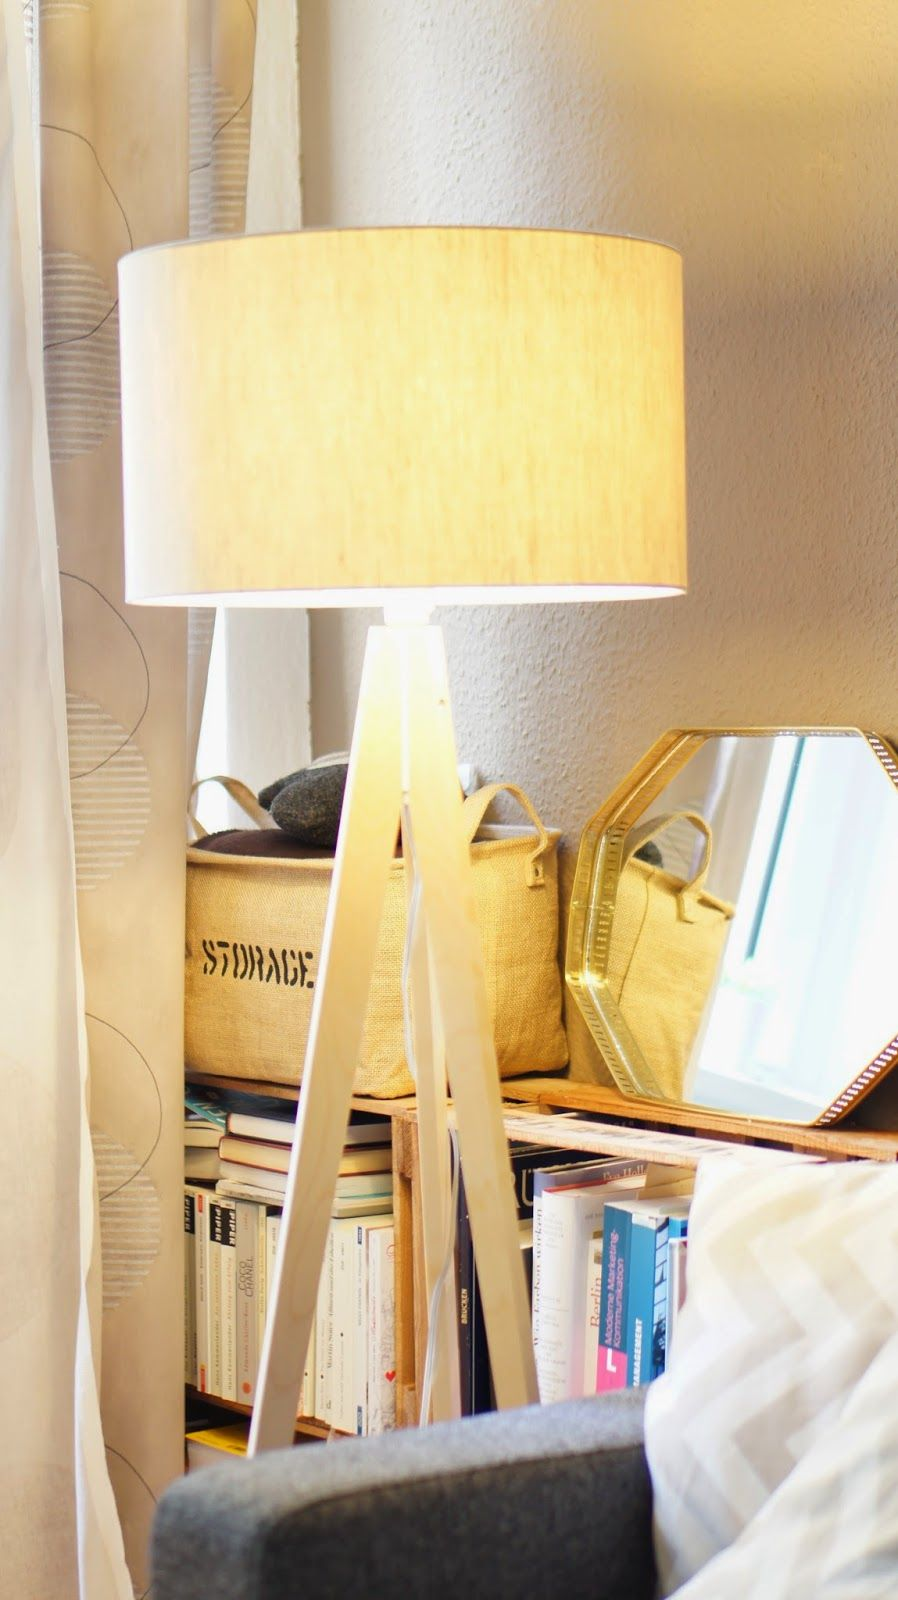 Interior New Scandinavian Tripod Lamp By Westwing Tripod Lampe Inneneinrichtung Interieur